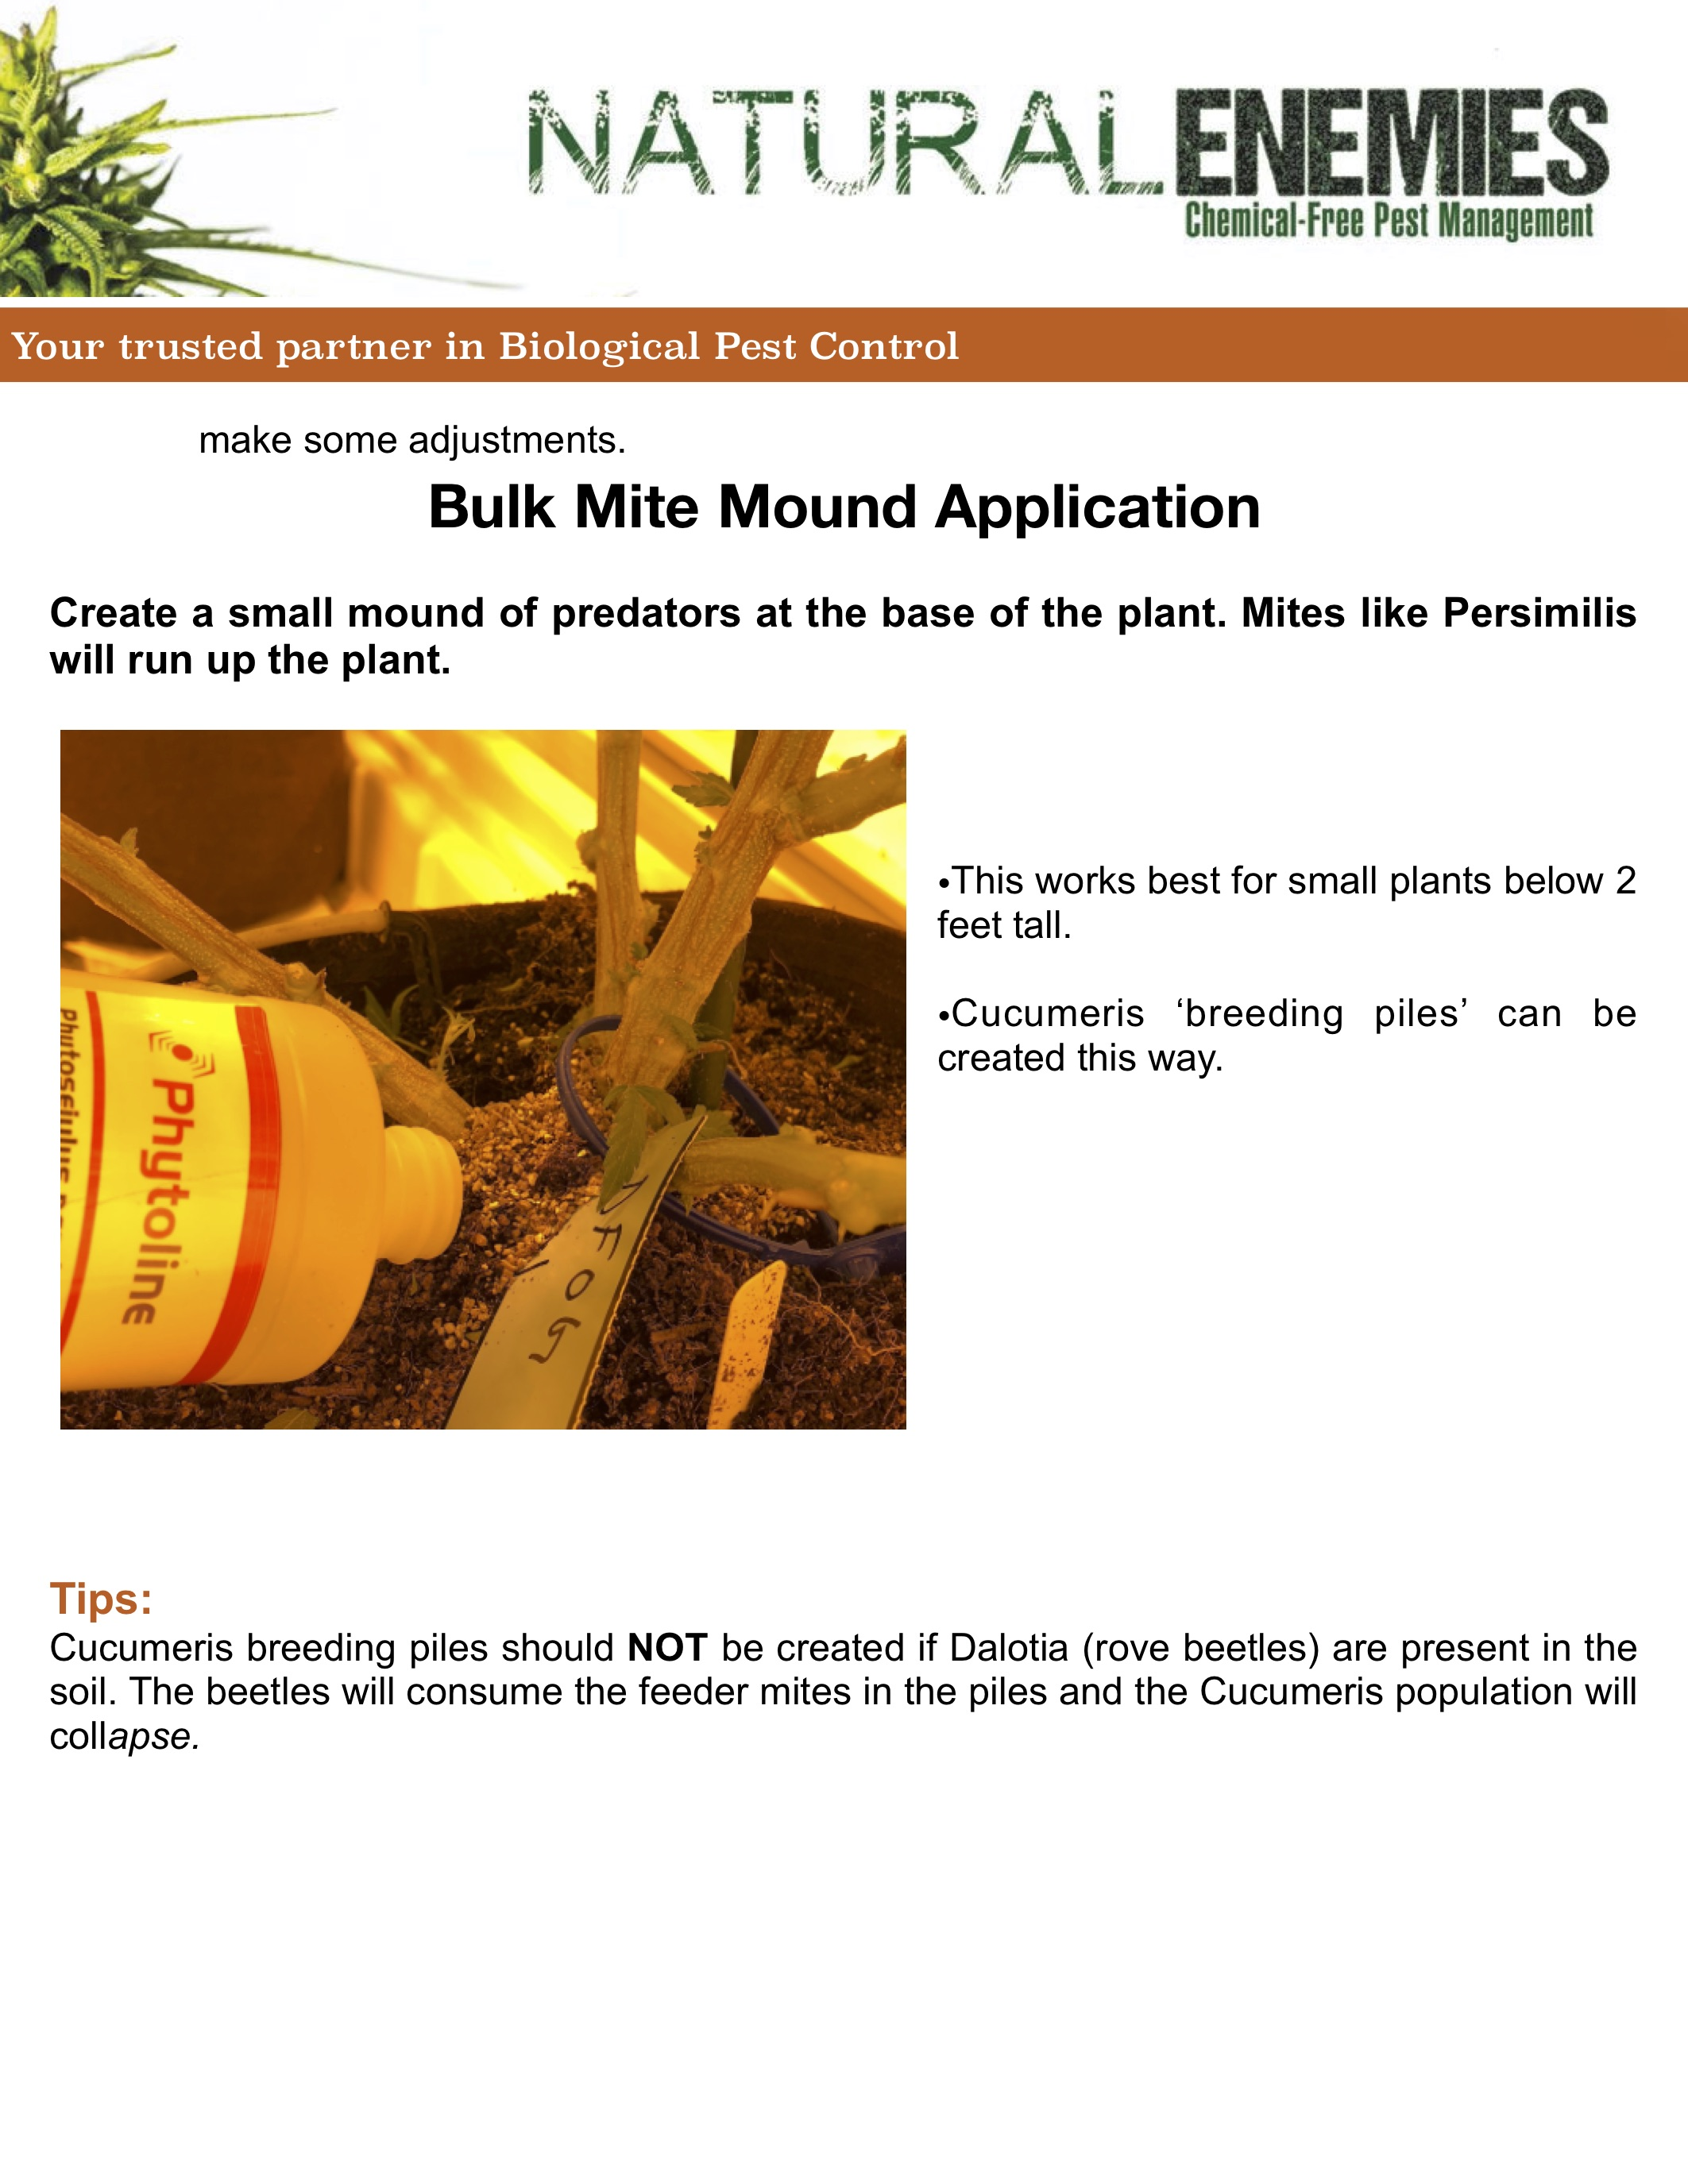 application-directions-for-mites-mound-application.jpg